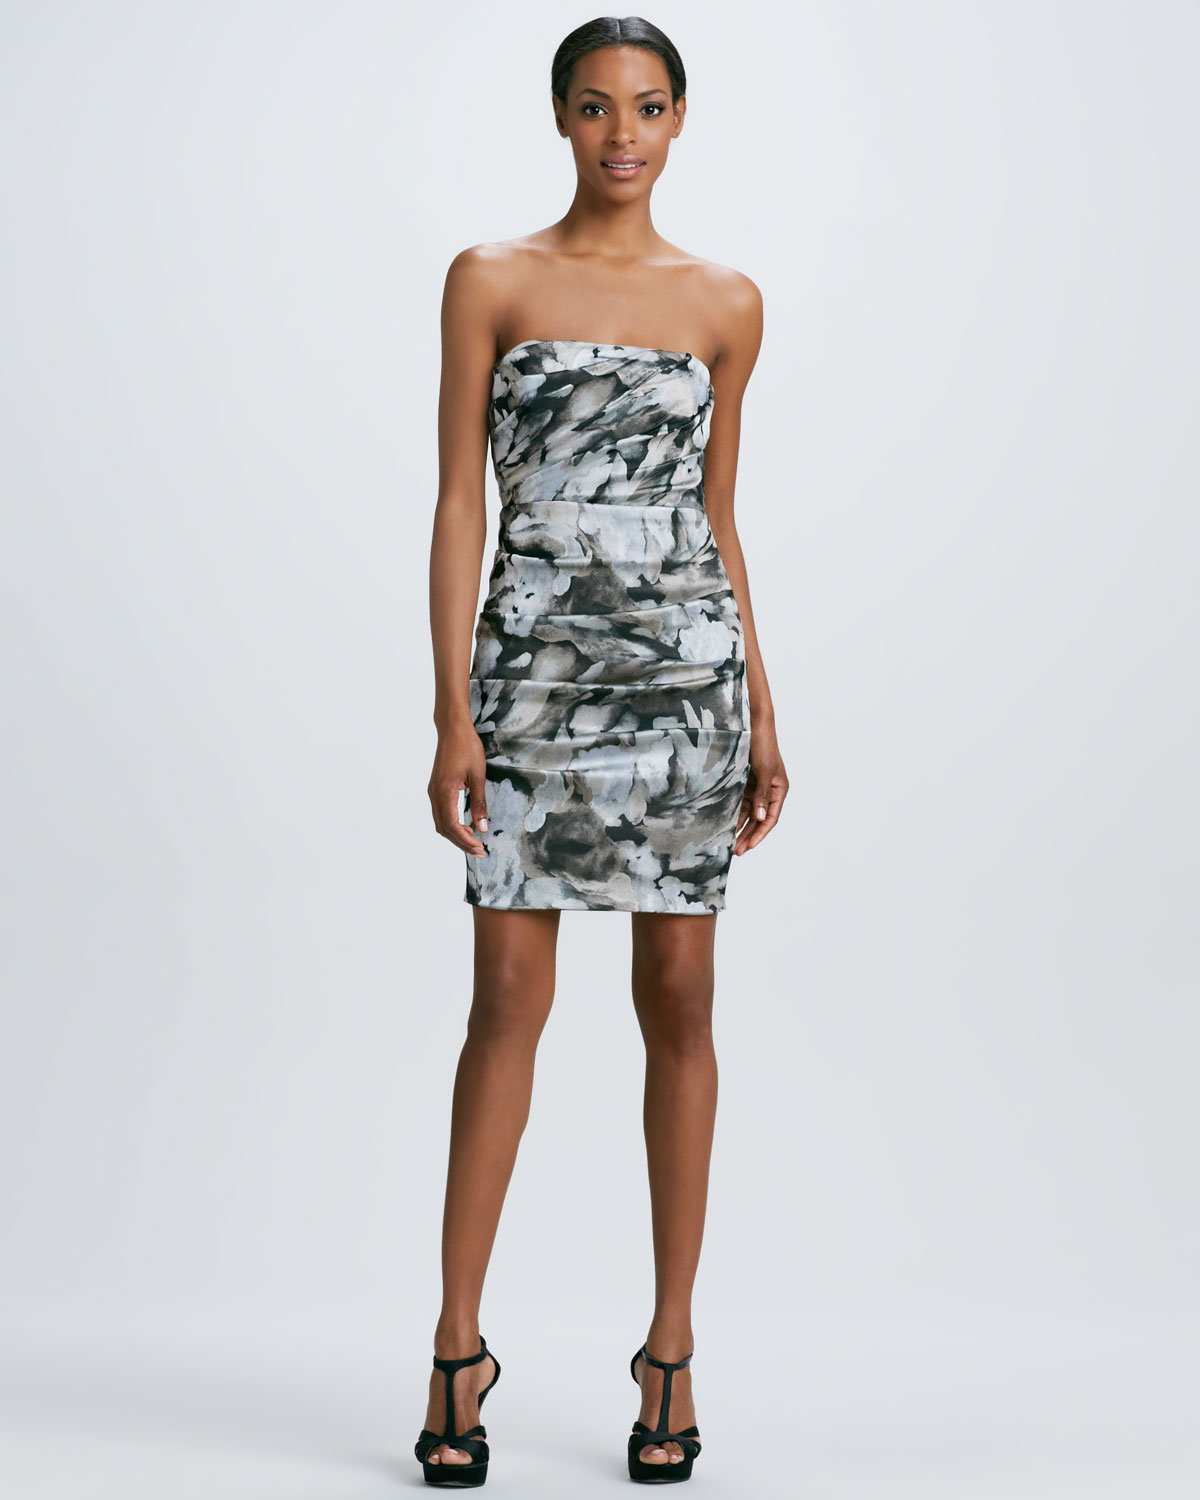 Nicole miller Strapless Floral Print Cocktail Dress in